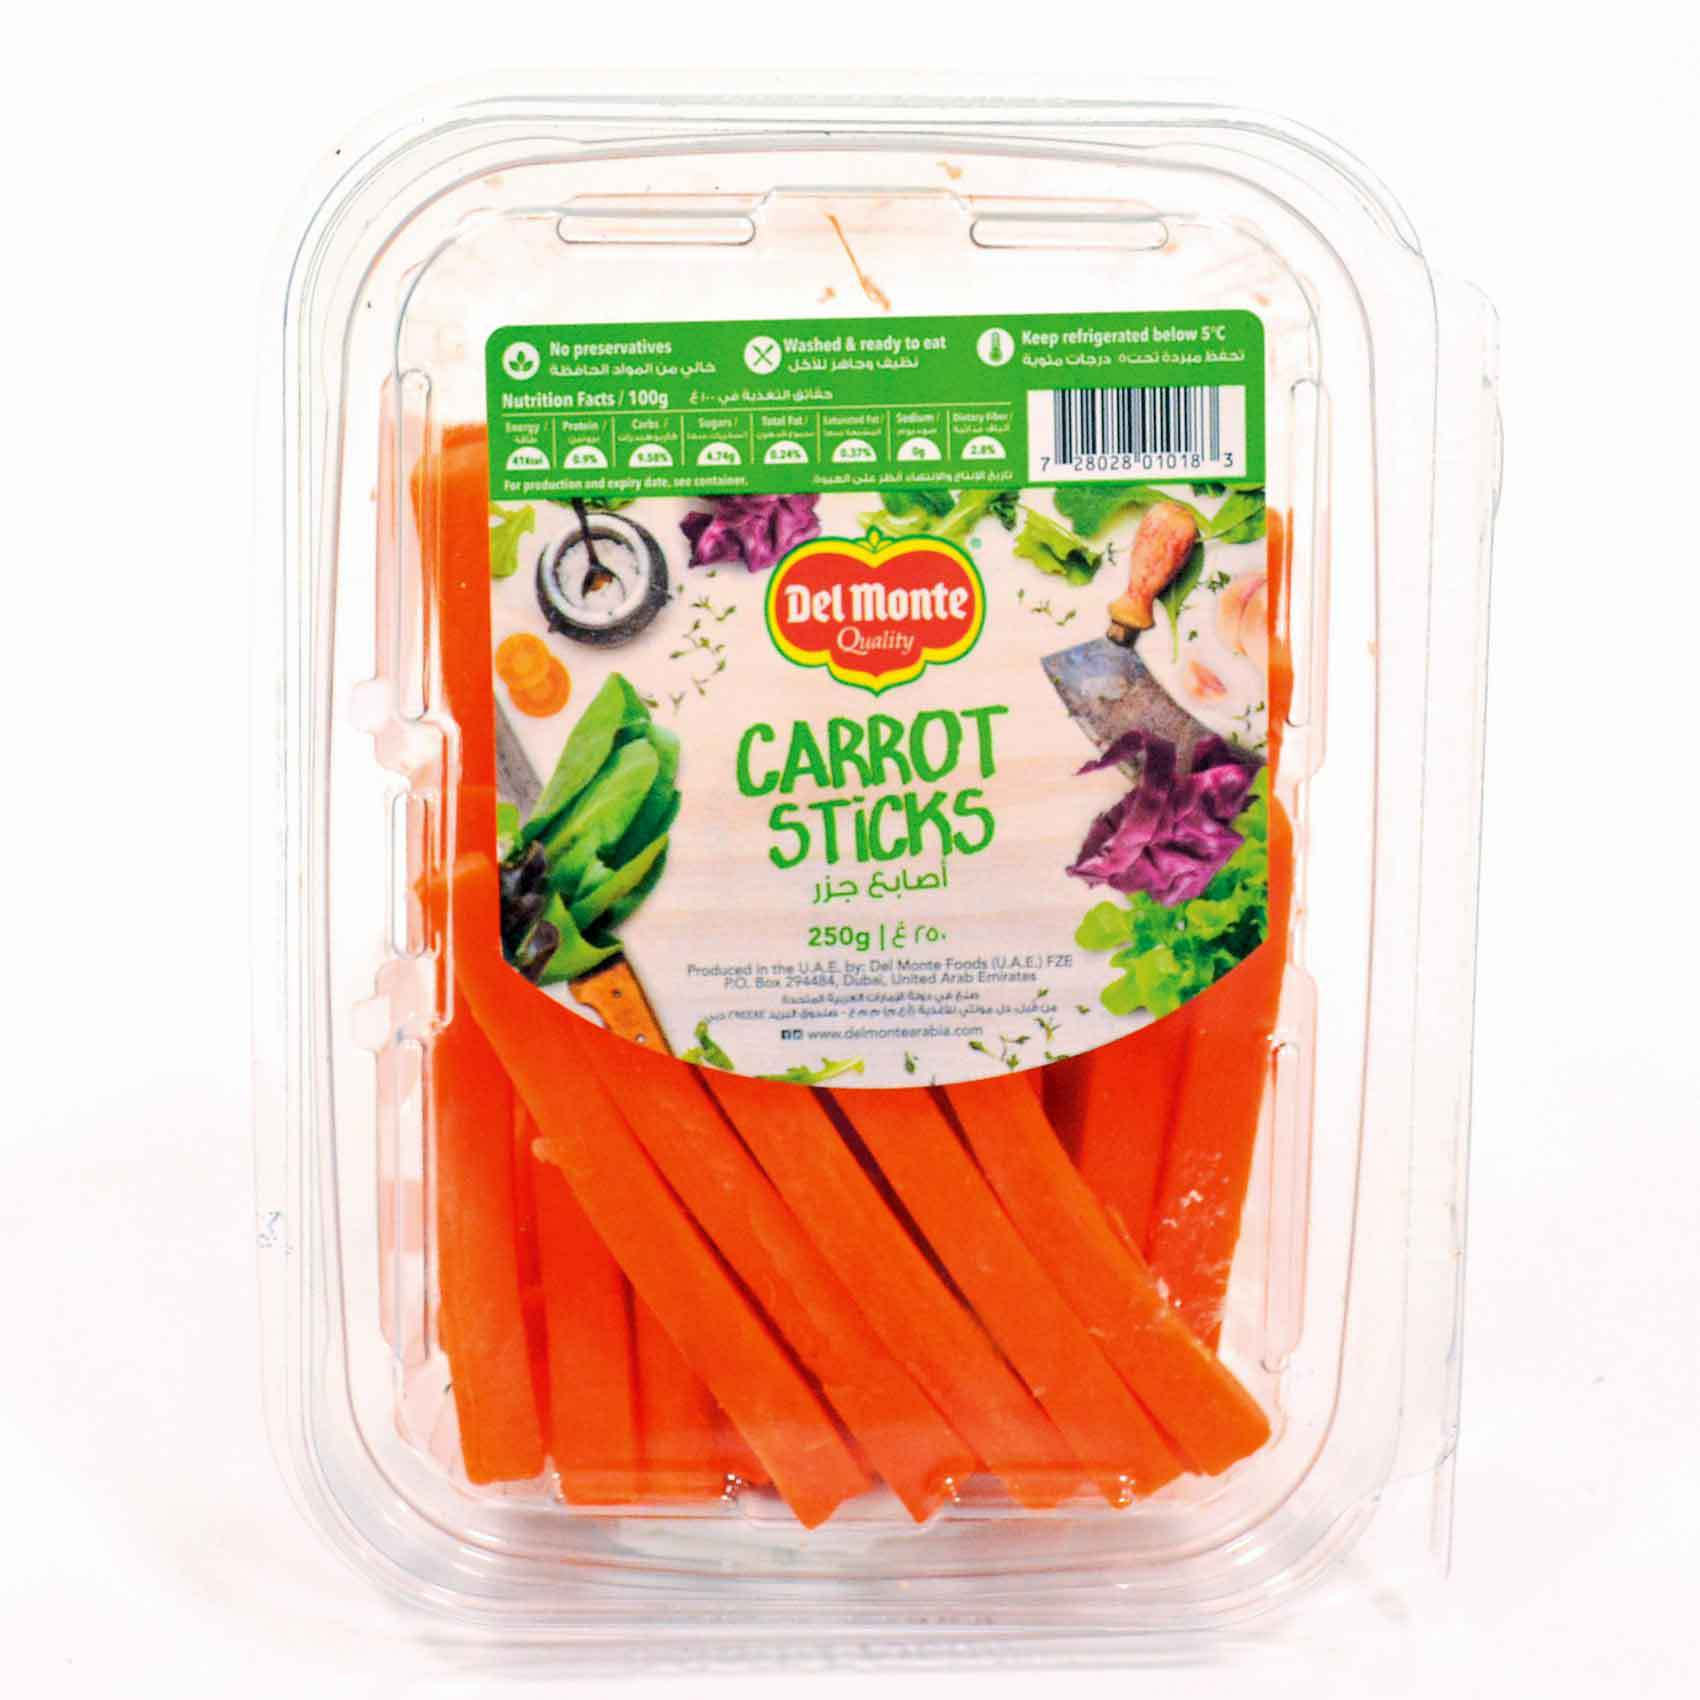 DM PEELED CARROT STICKS 250G